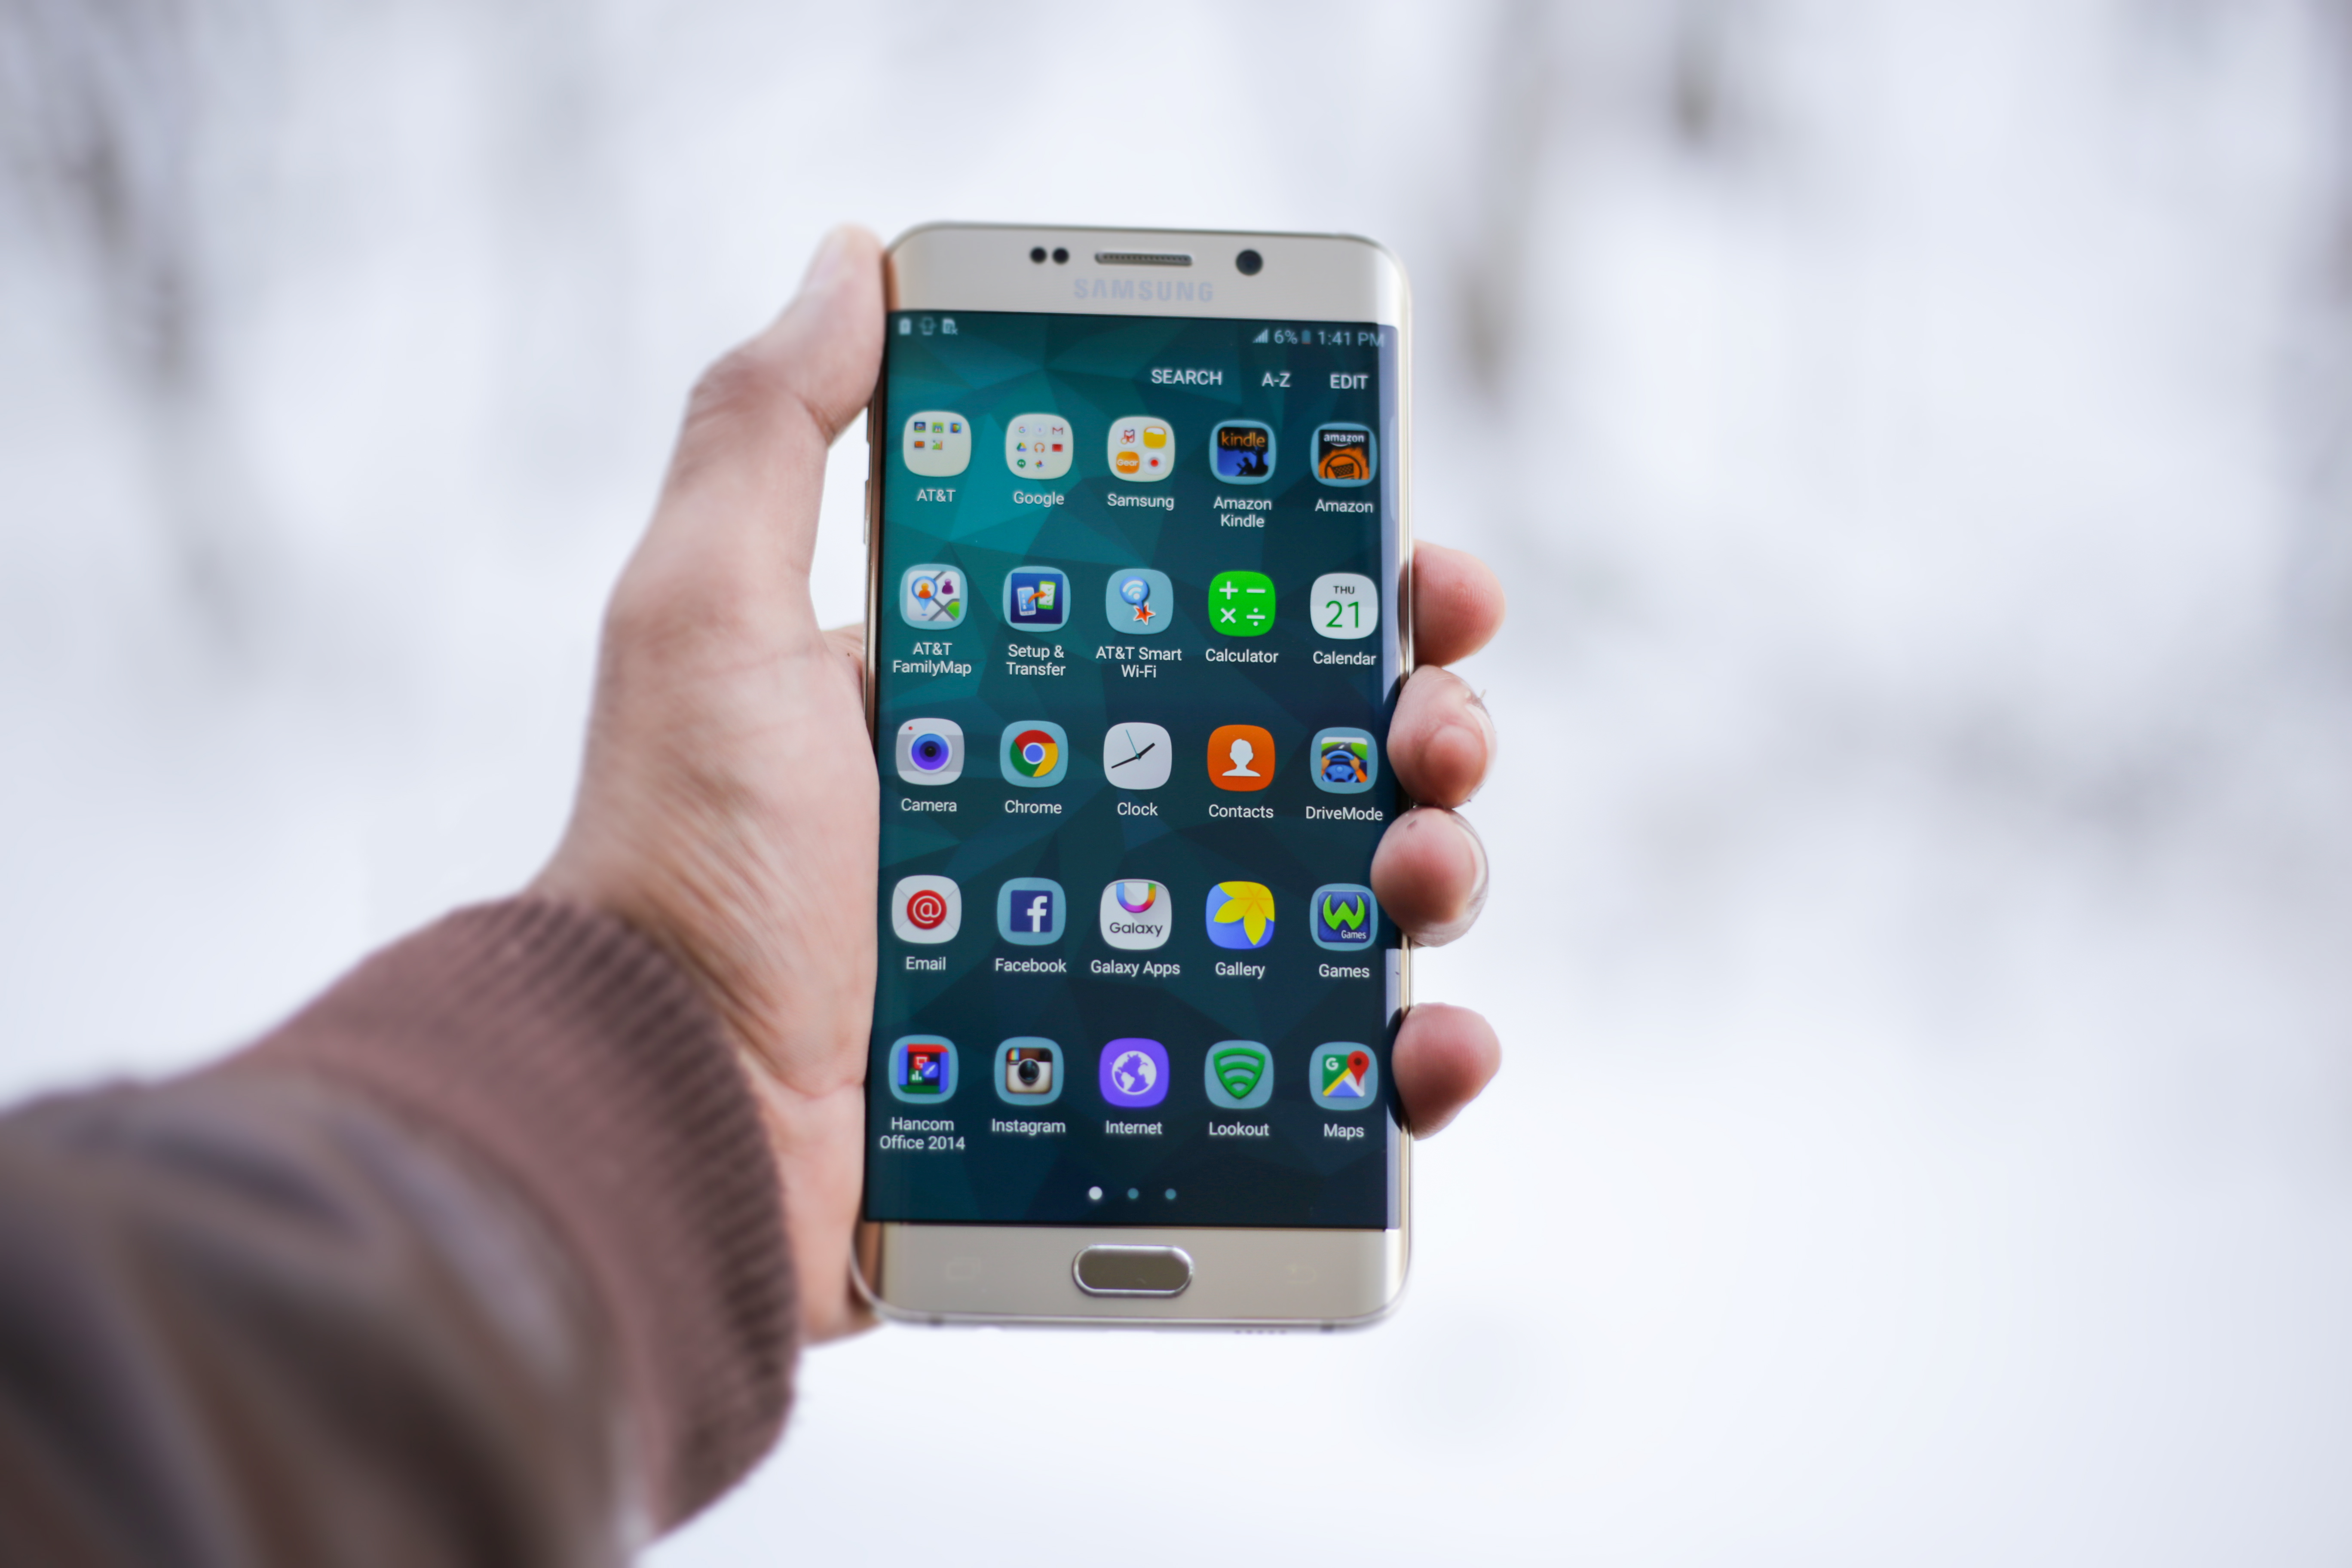 Mobile Marketing: What is it & why does it matter so much? 3RockAR Blog